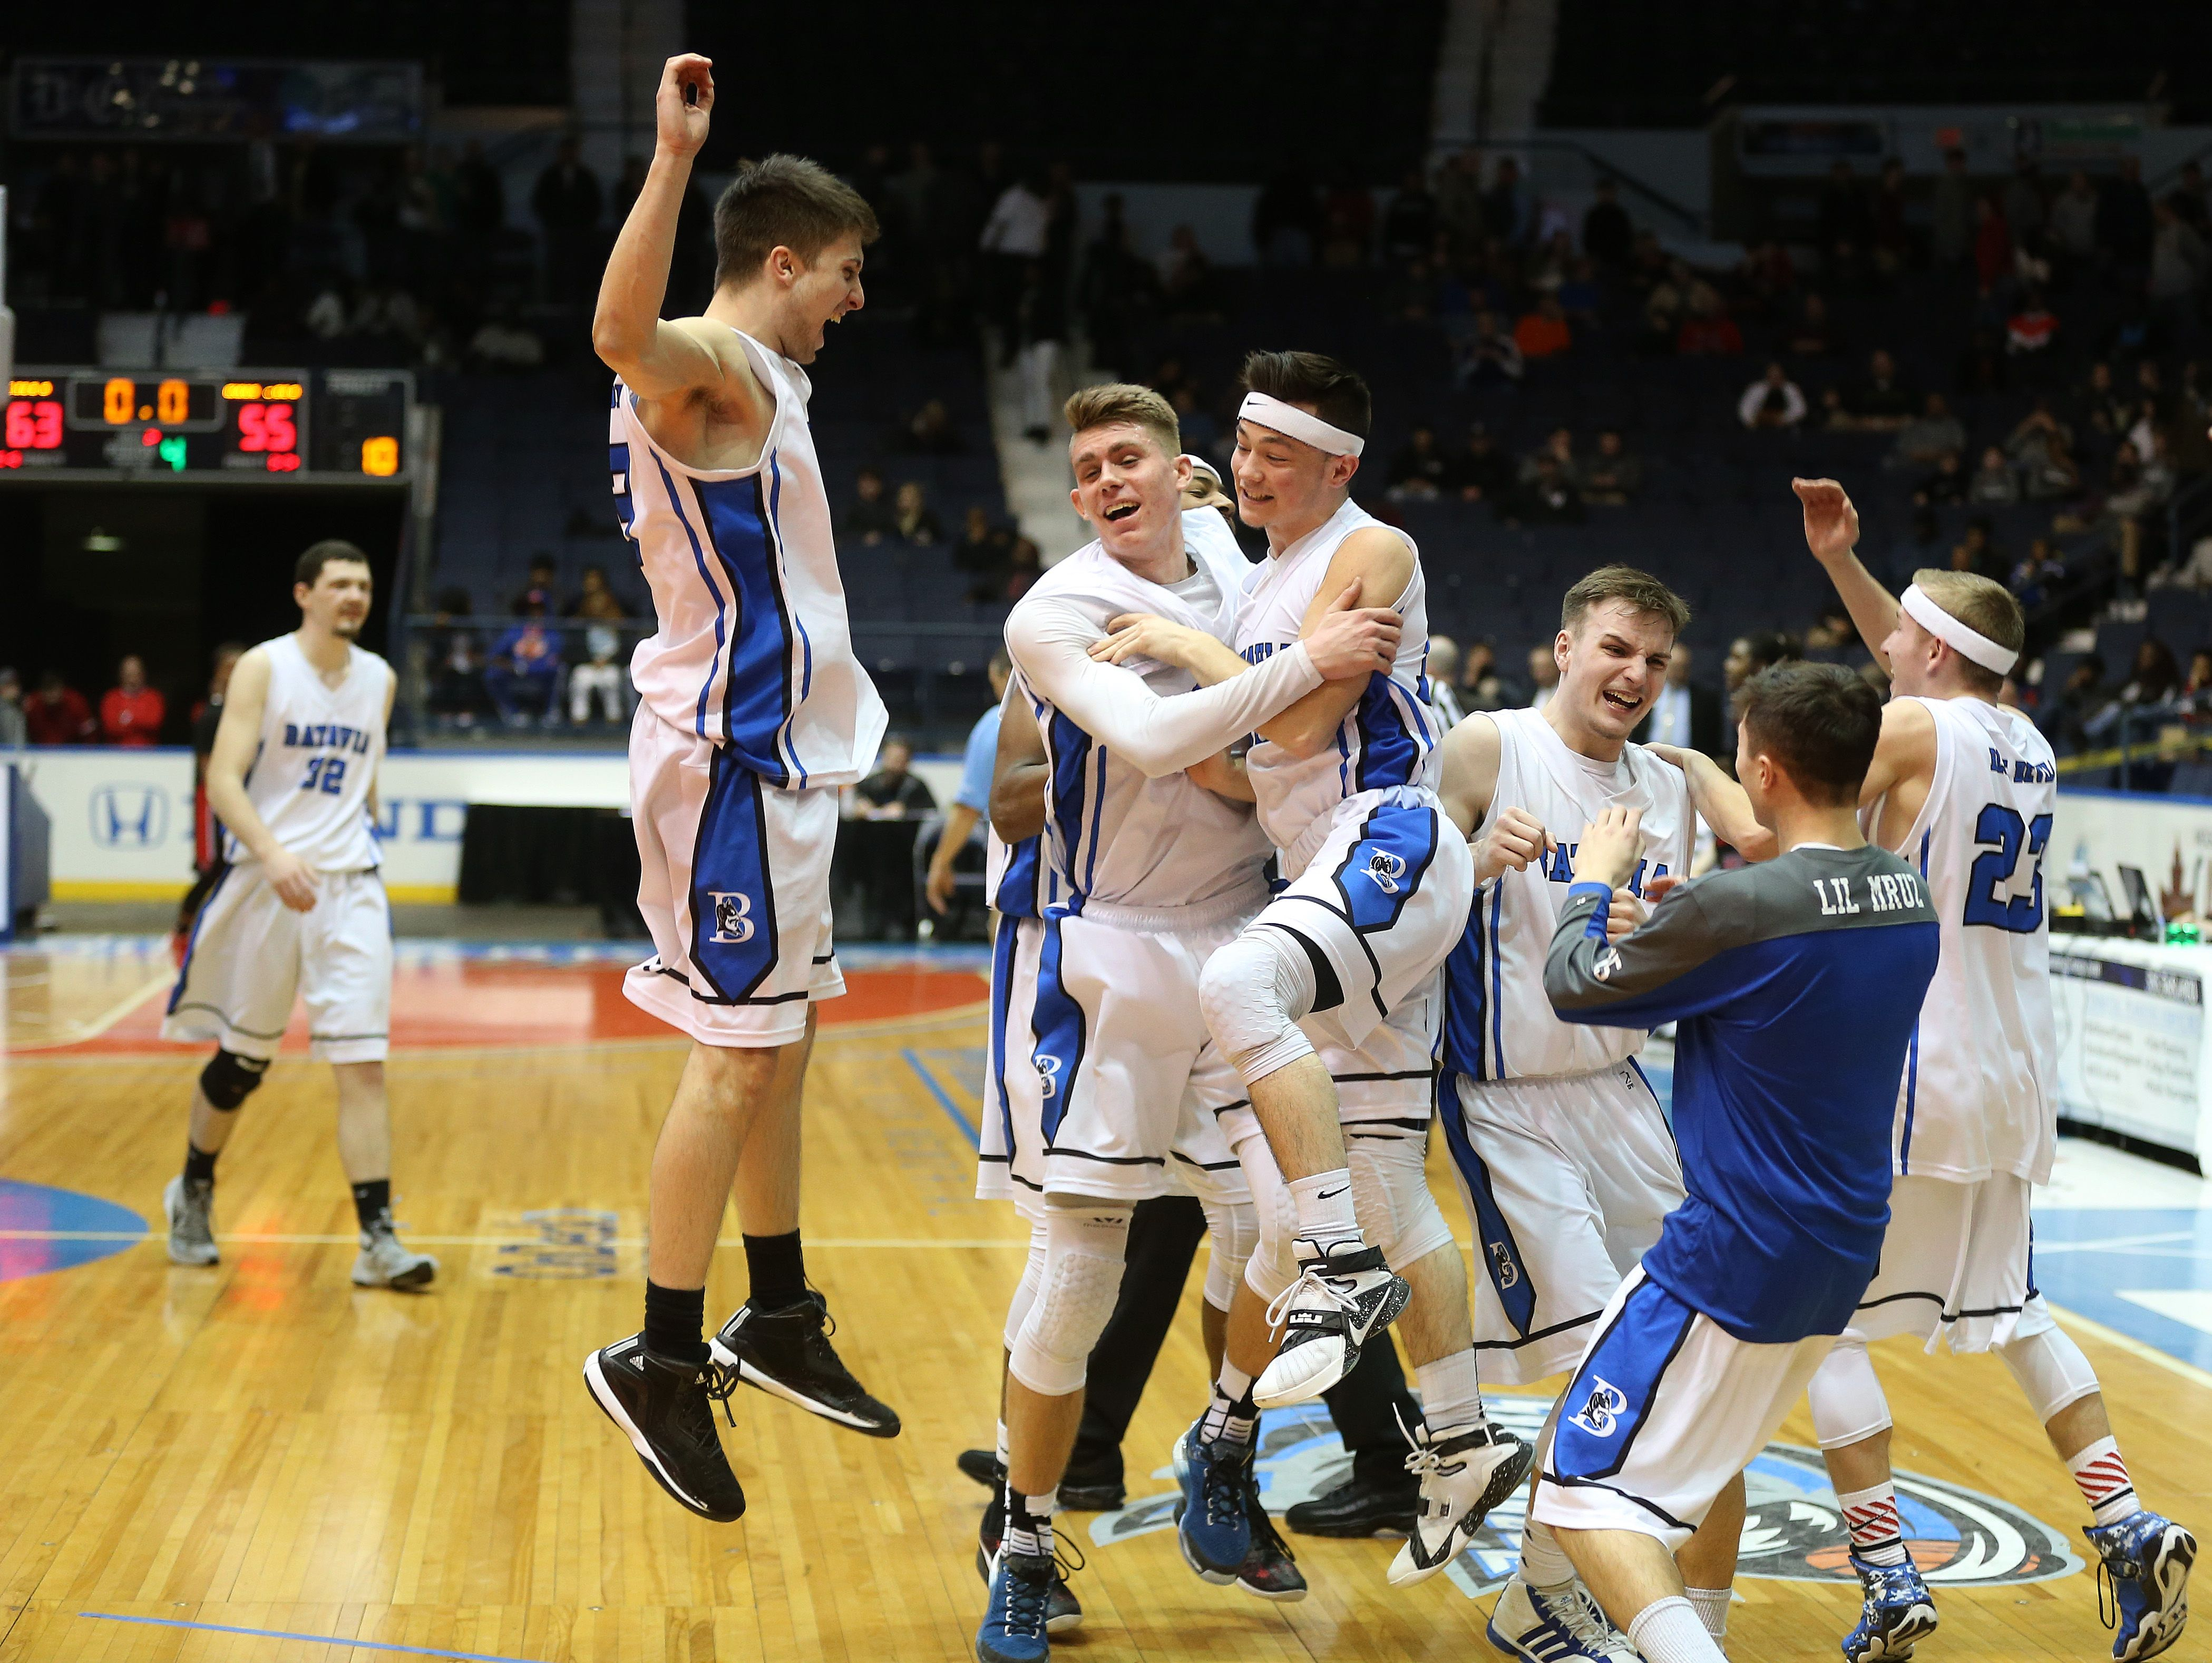 Batavia players celebrate after beating Wilson for the Class A2 championship 64-57.